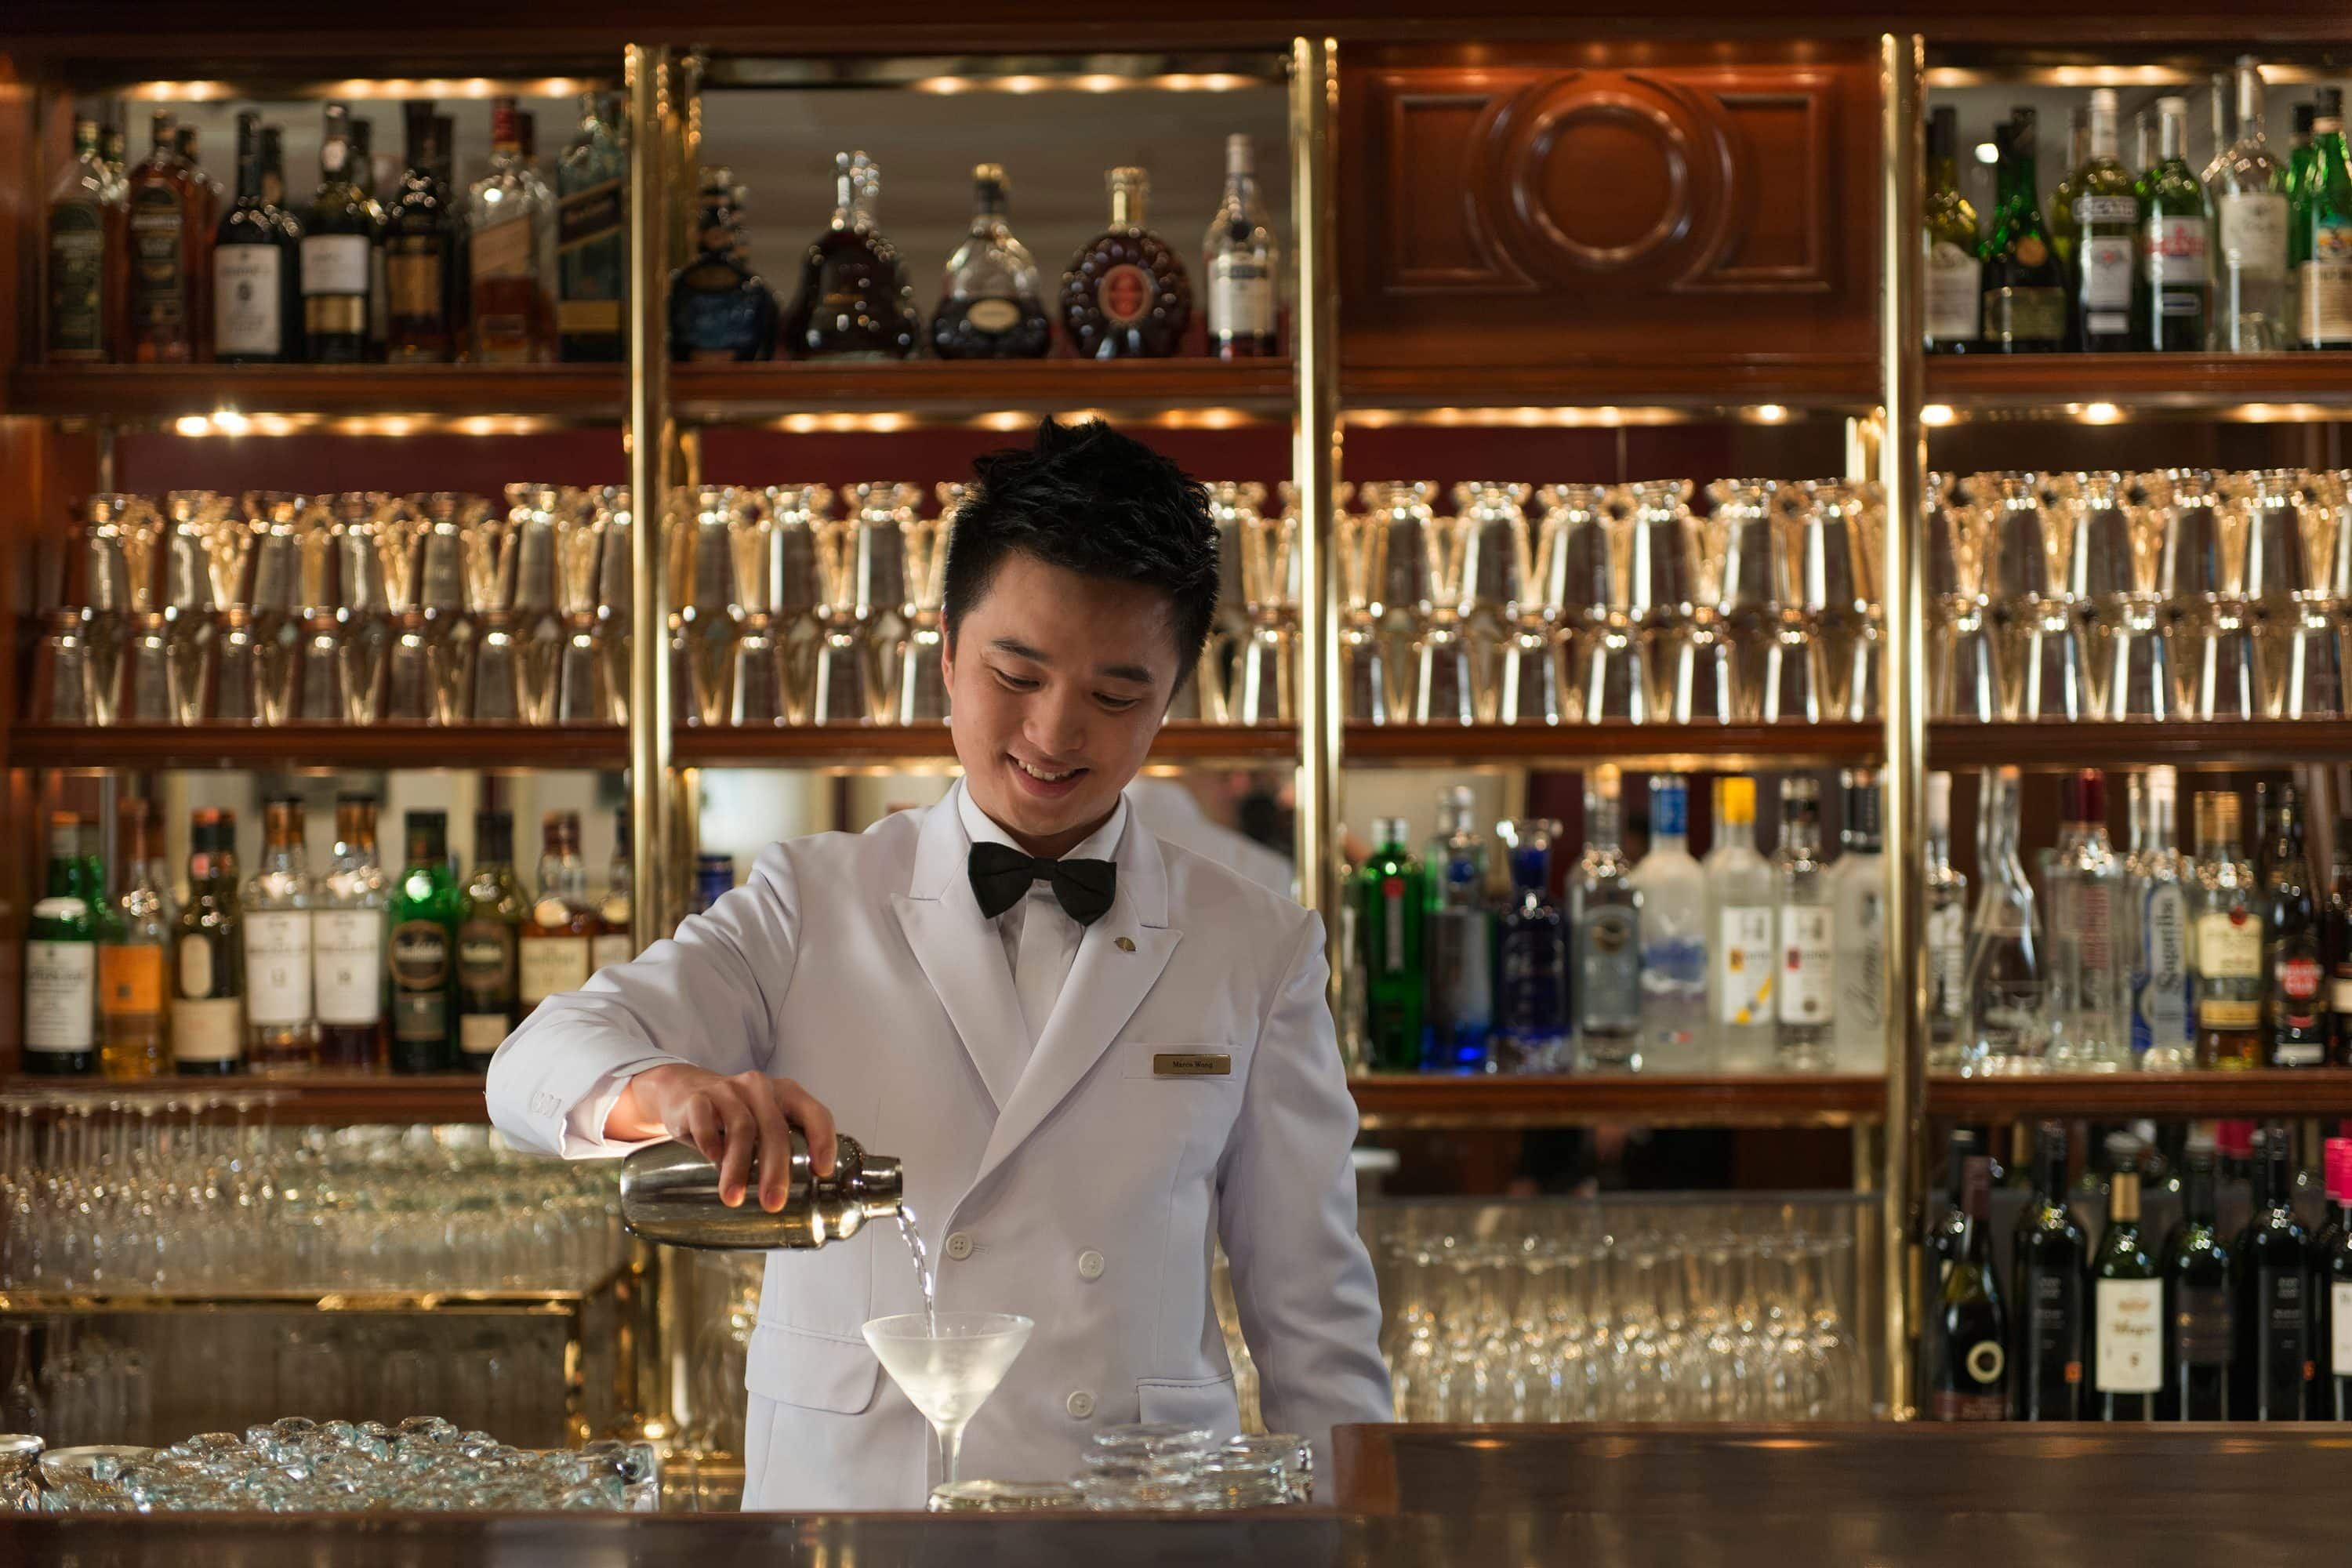 A bartender prepares a drink at the Captain's Bar, Mandarin Oriental, Hong Kong